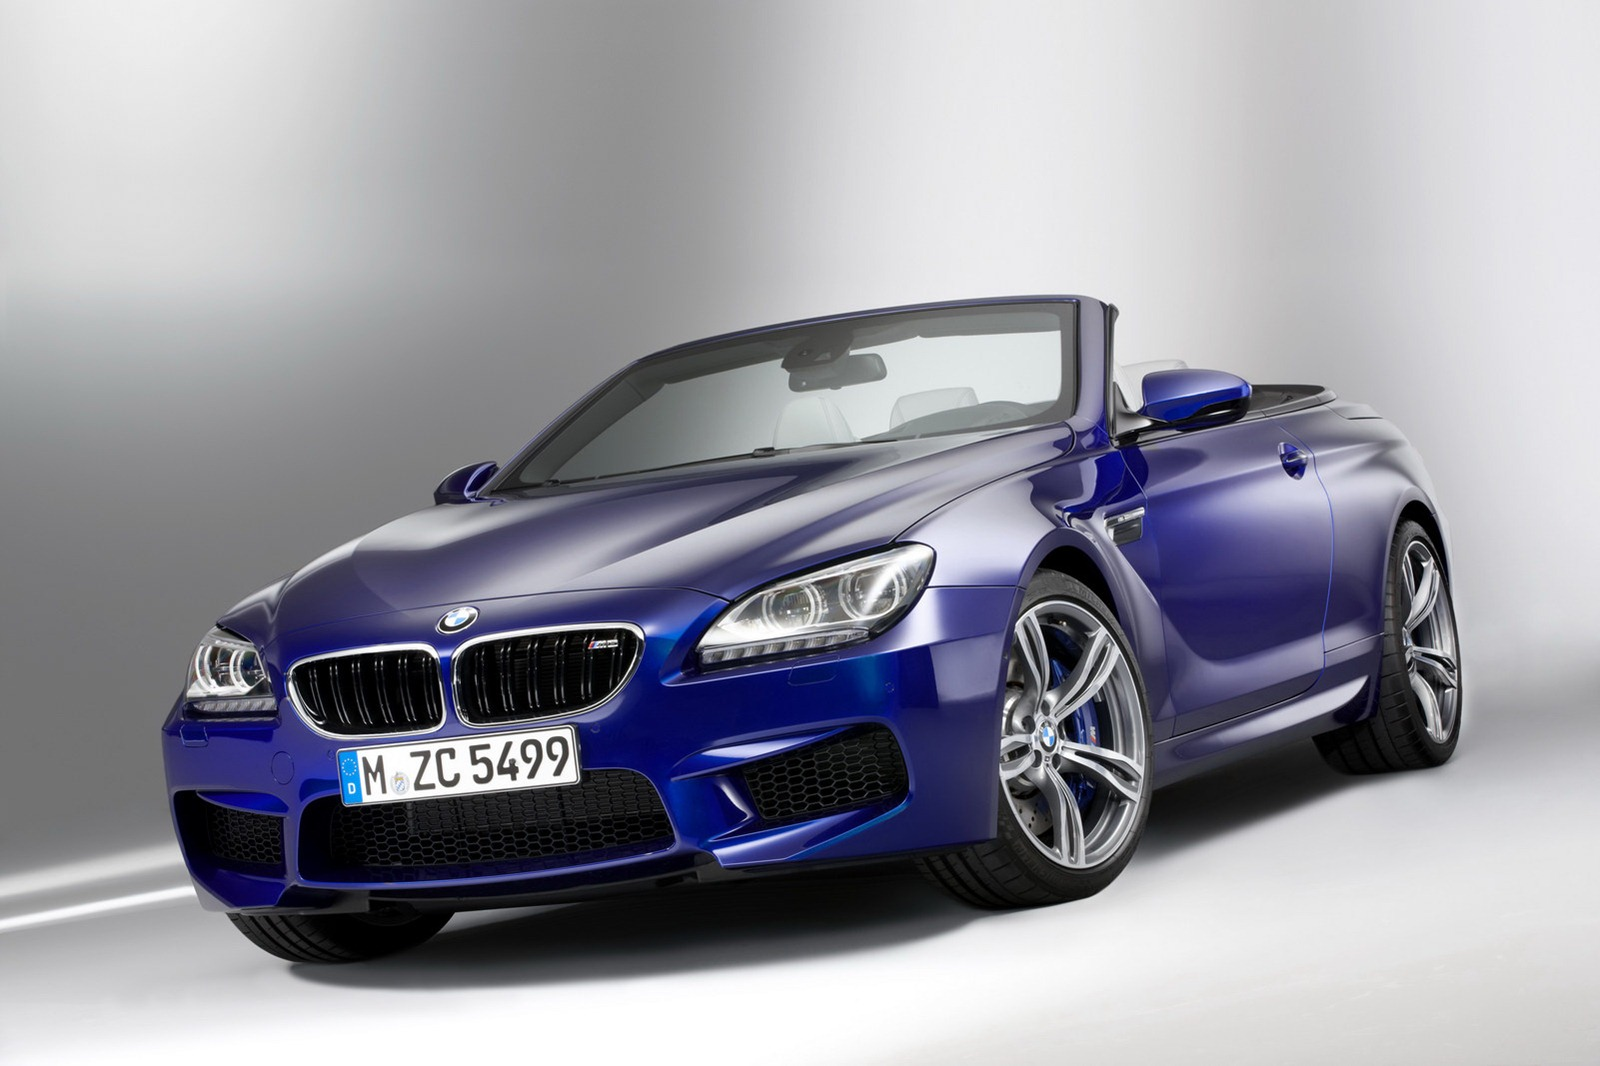 all new 2012 bmw m6 coupe and convertible photos and details. Black Bedroom Furniture Sets. Home Design Ideas